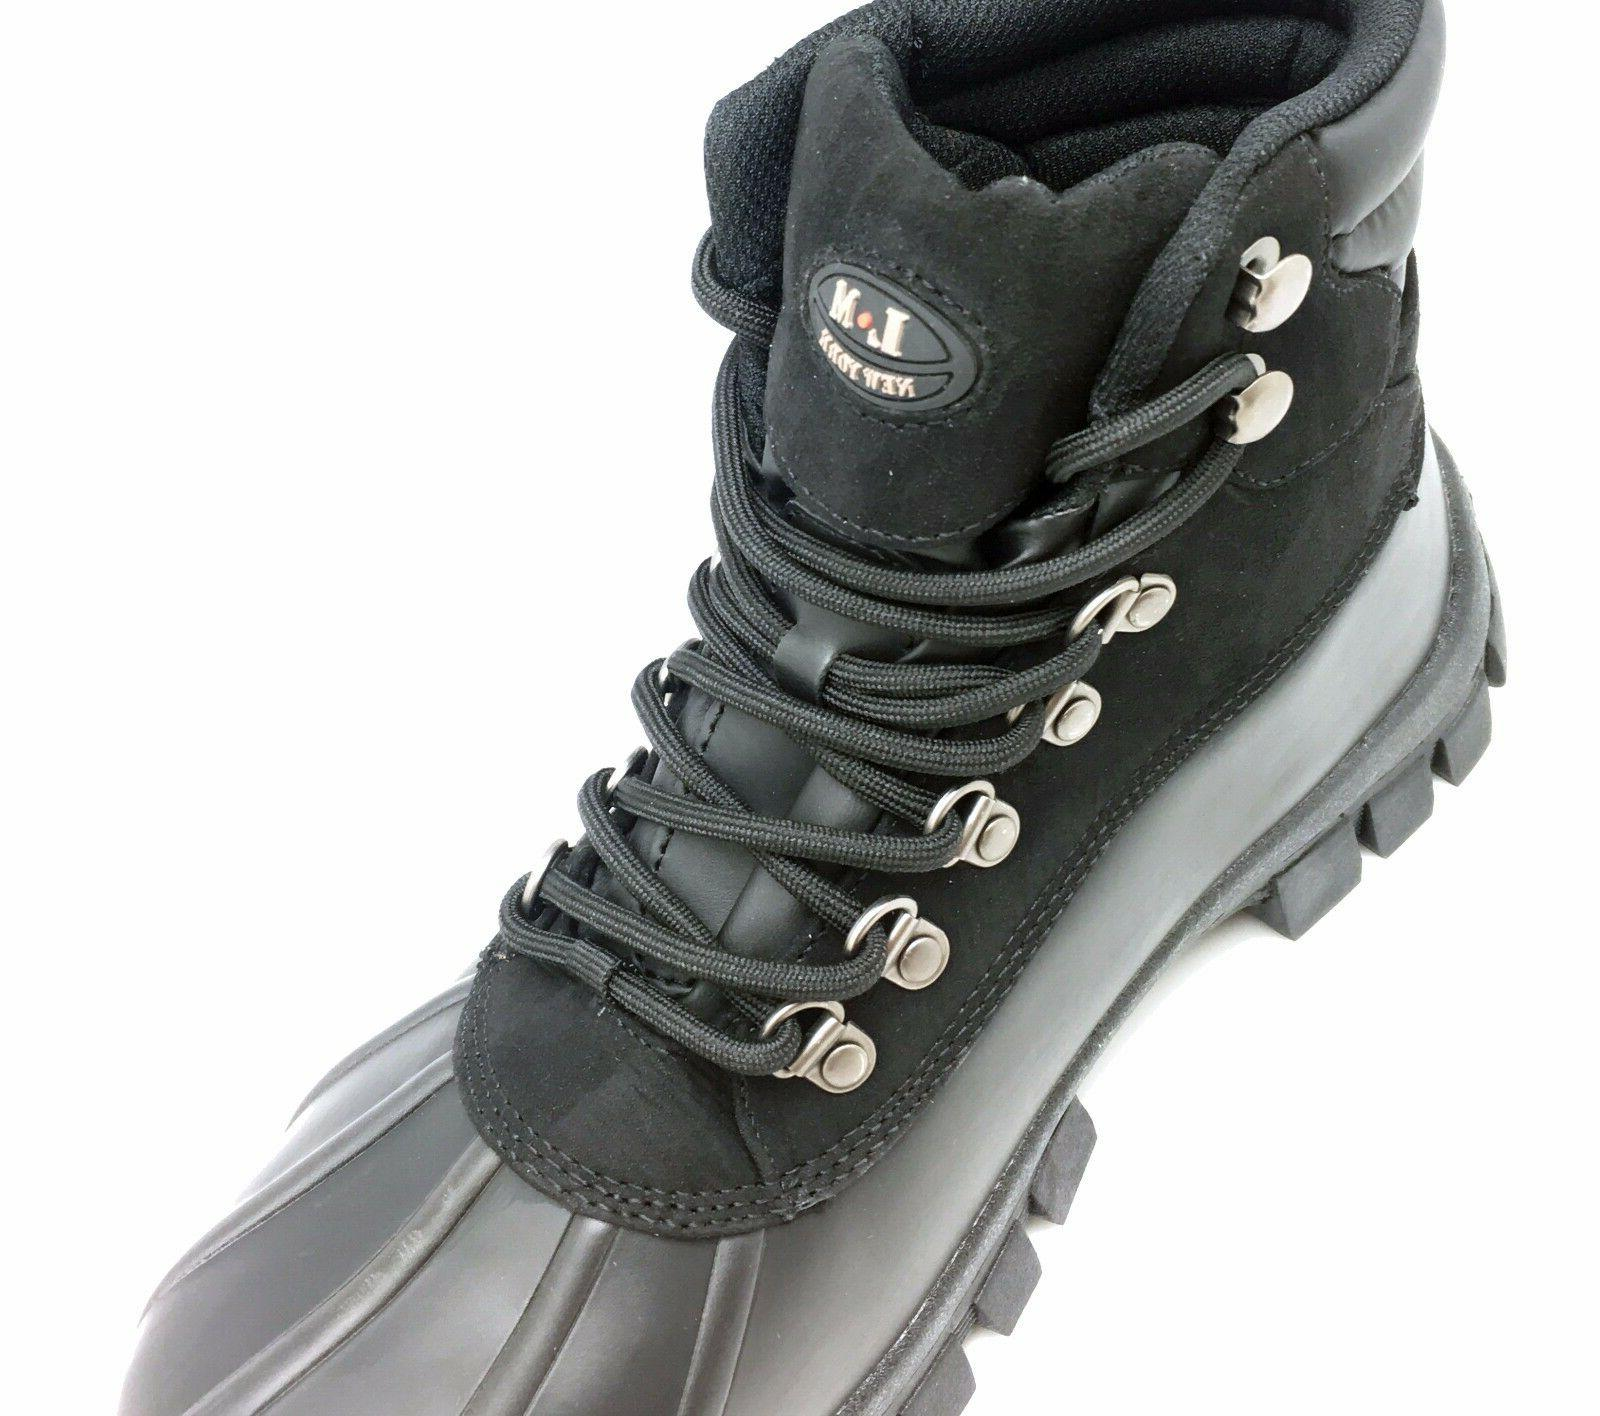 LM Men's Insulated Boots Waterproof